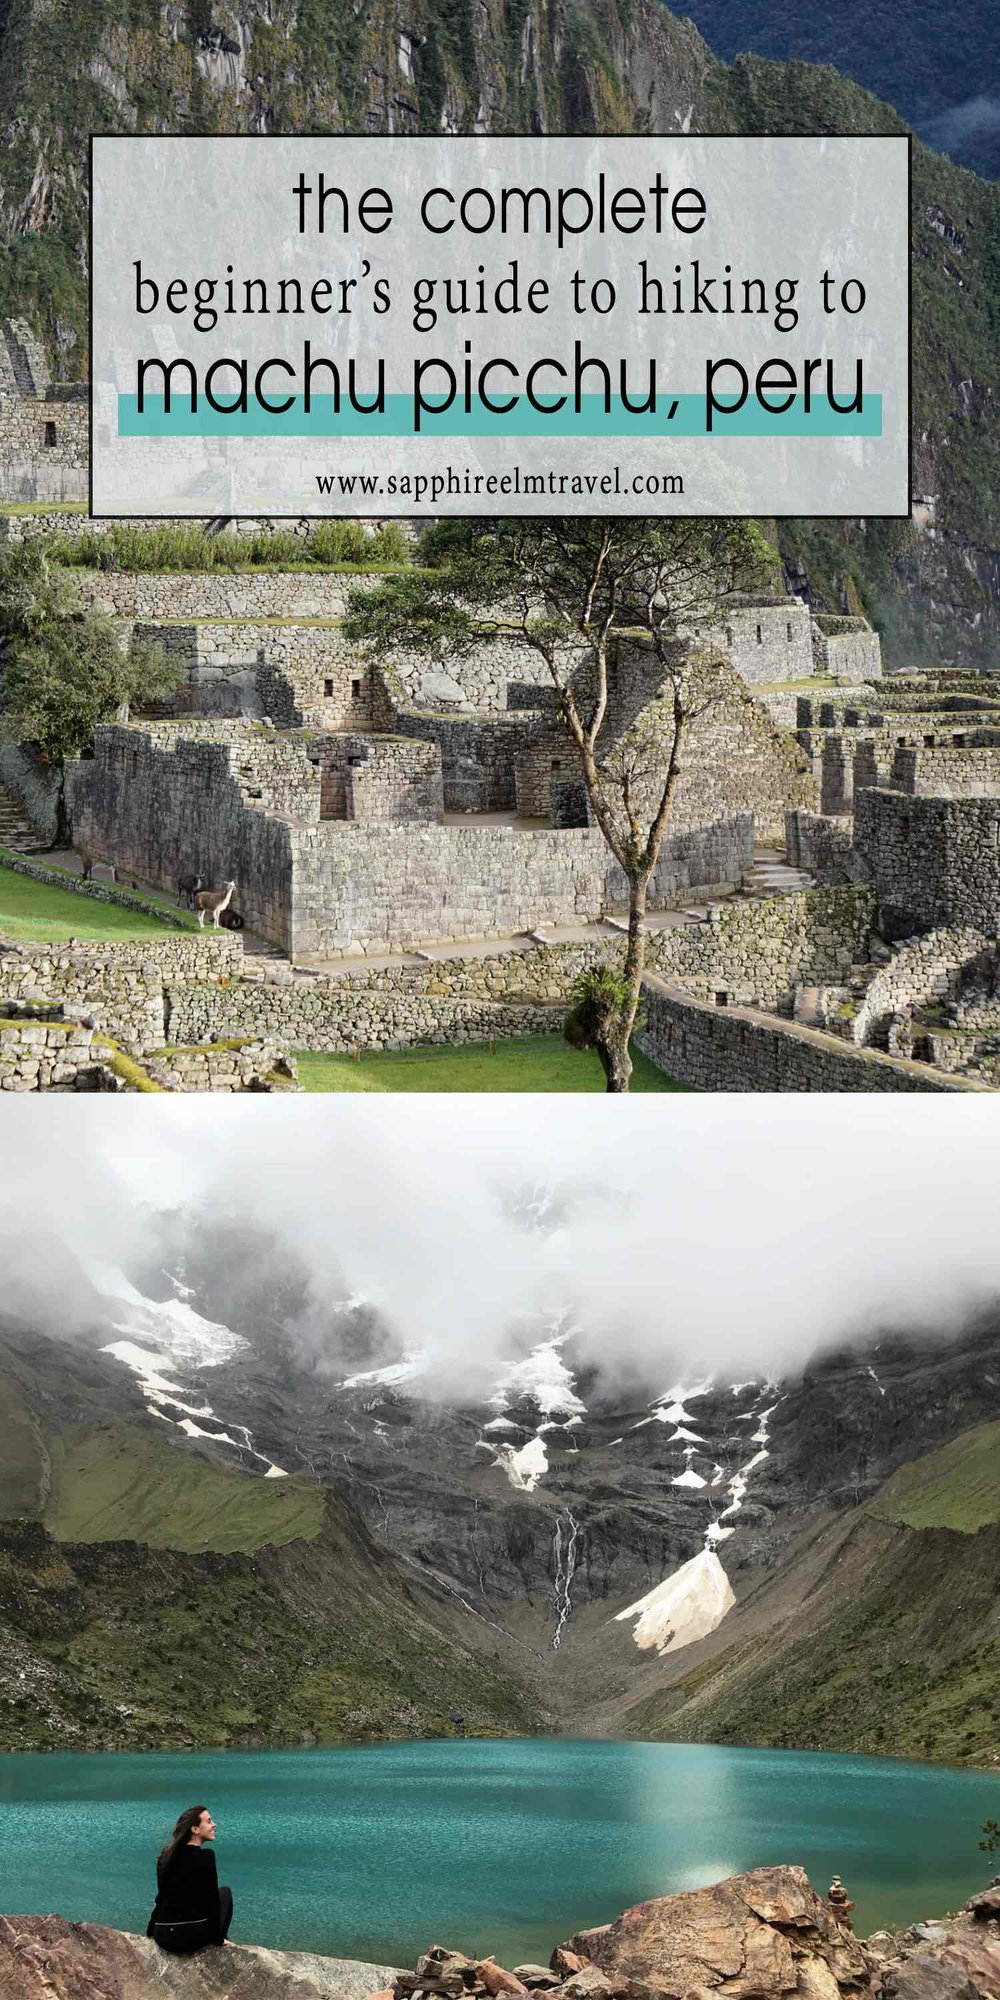 Guide to hiking to Machu Picchu Peru